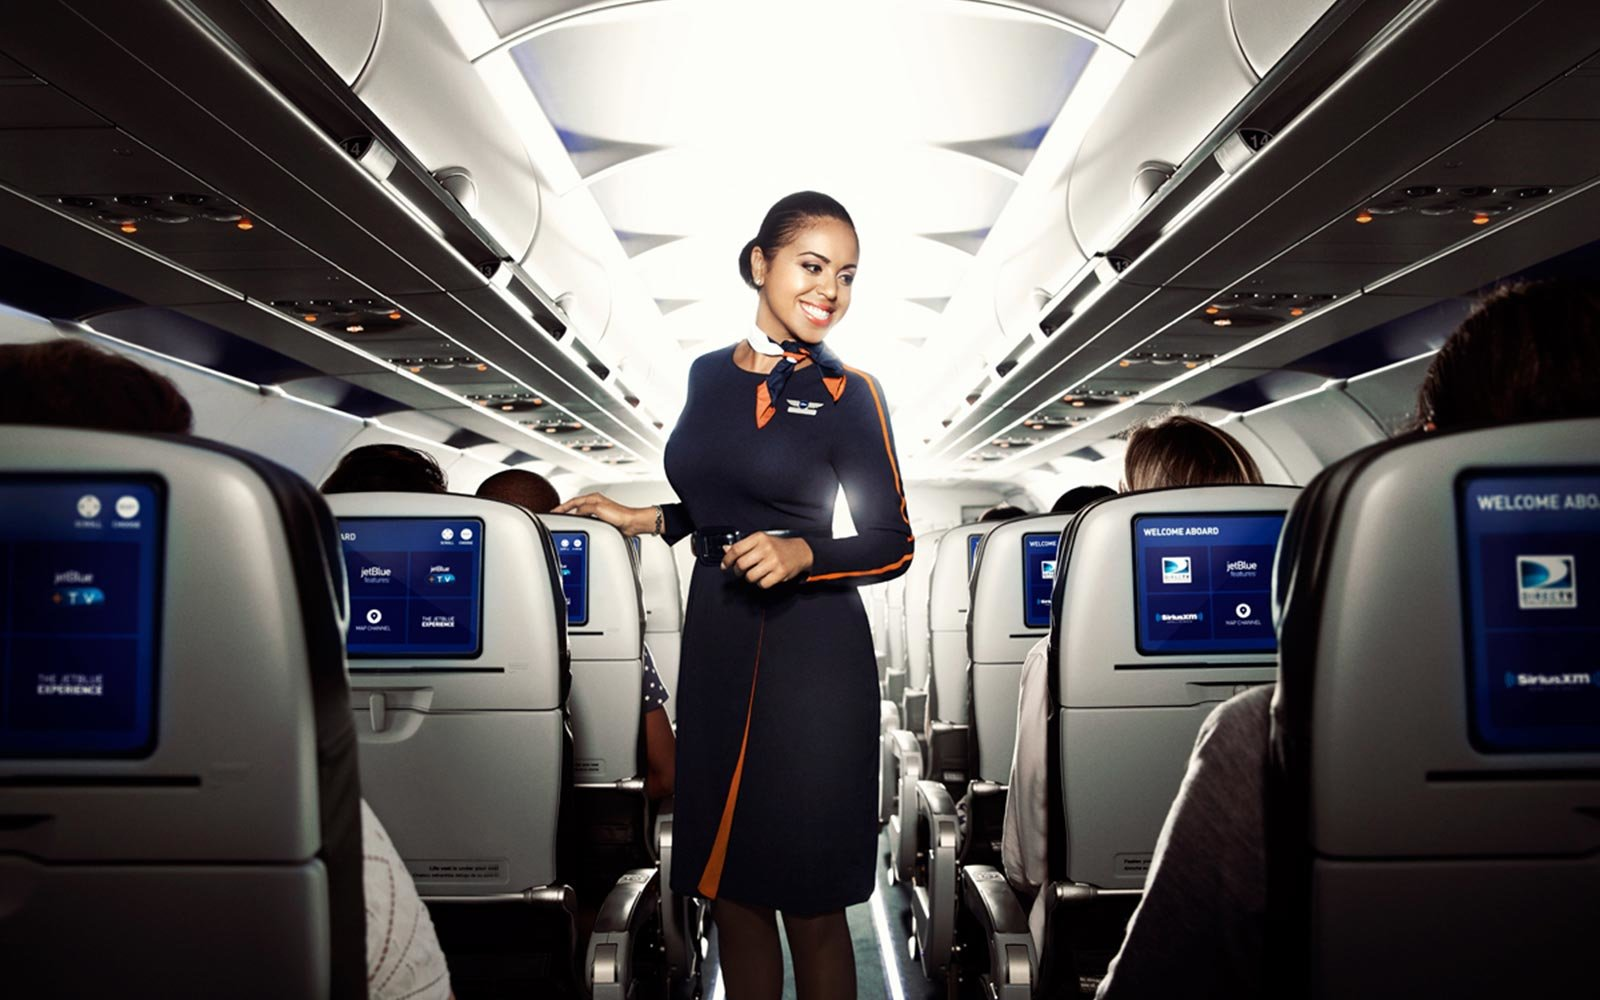 PR photo of JetBlue flight attendant